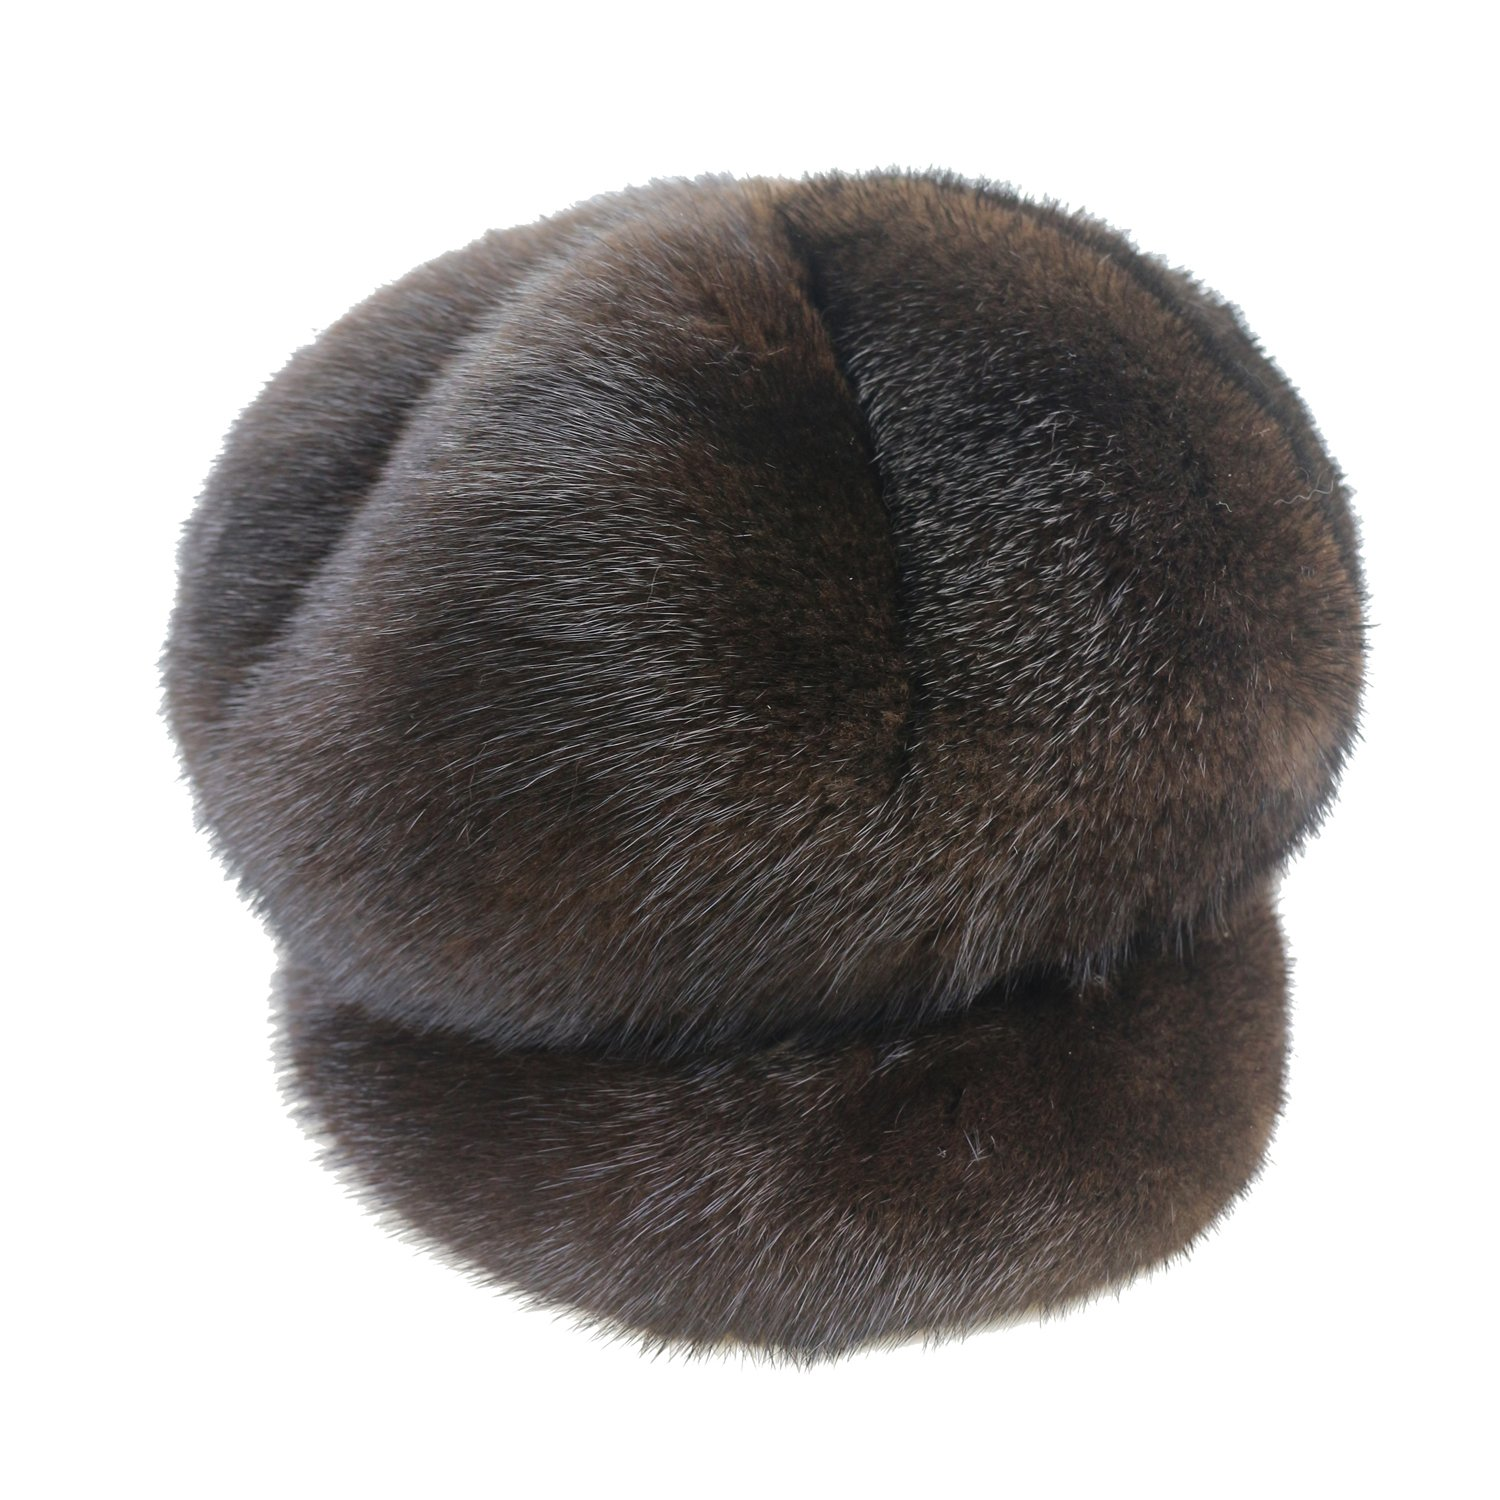 Ysting Women's Real Mink Fur Hat Natural Mink Fur Cap Winter Women (Dark coffee) by Ysting&CO